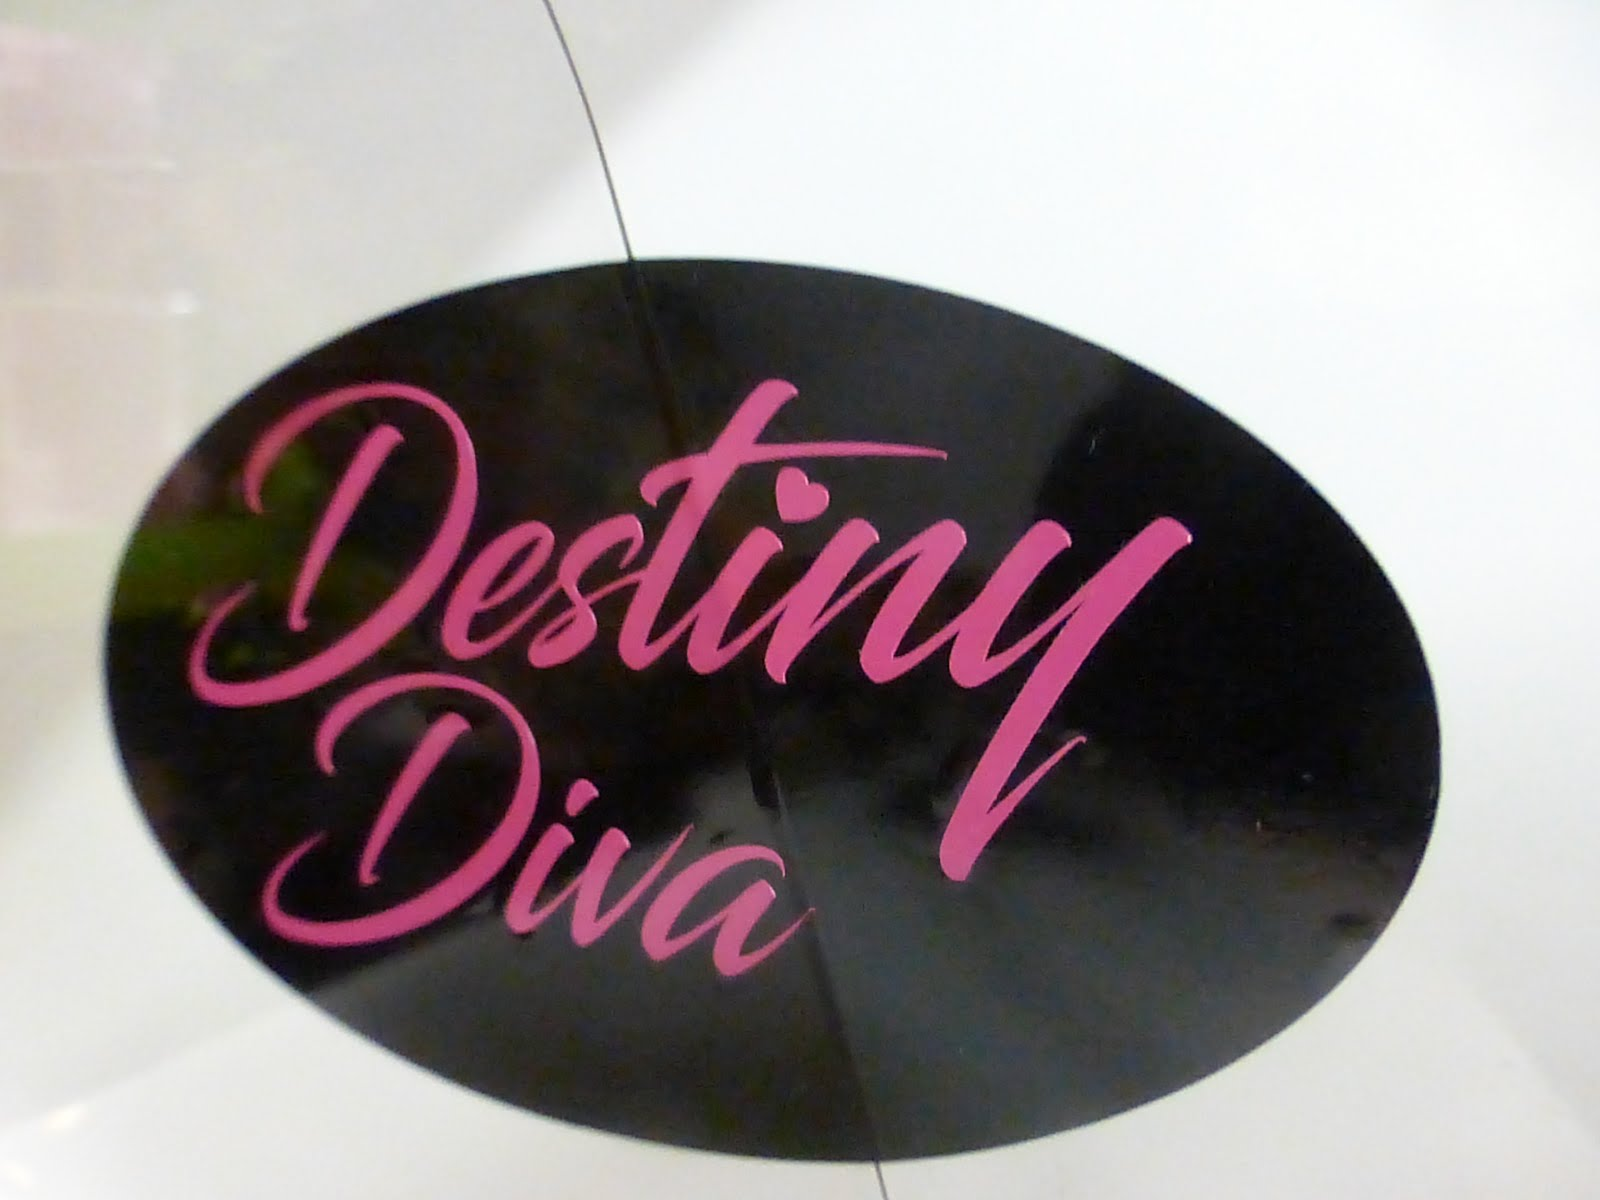 I Am A Destiny Diva